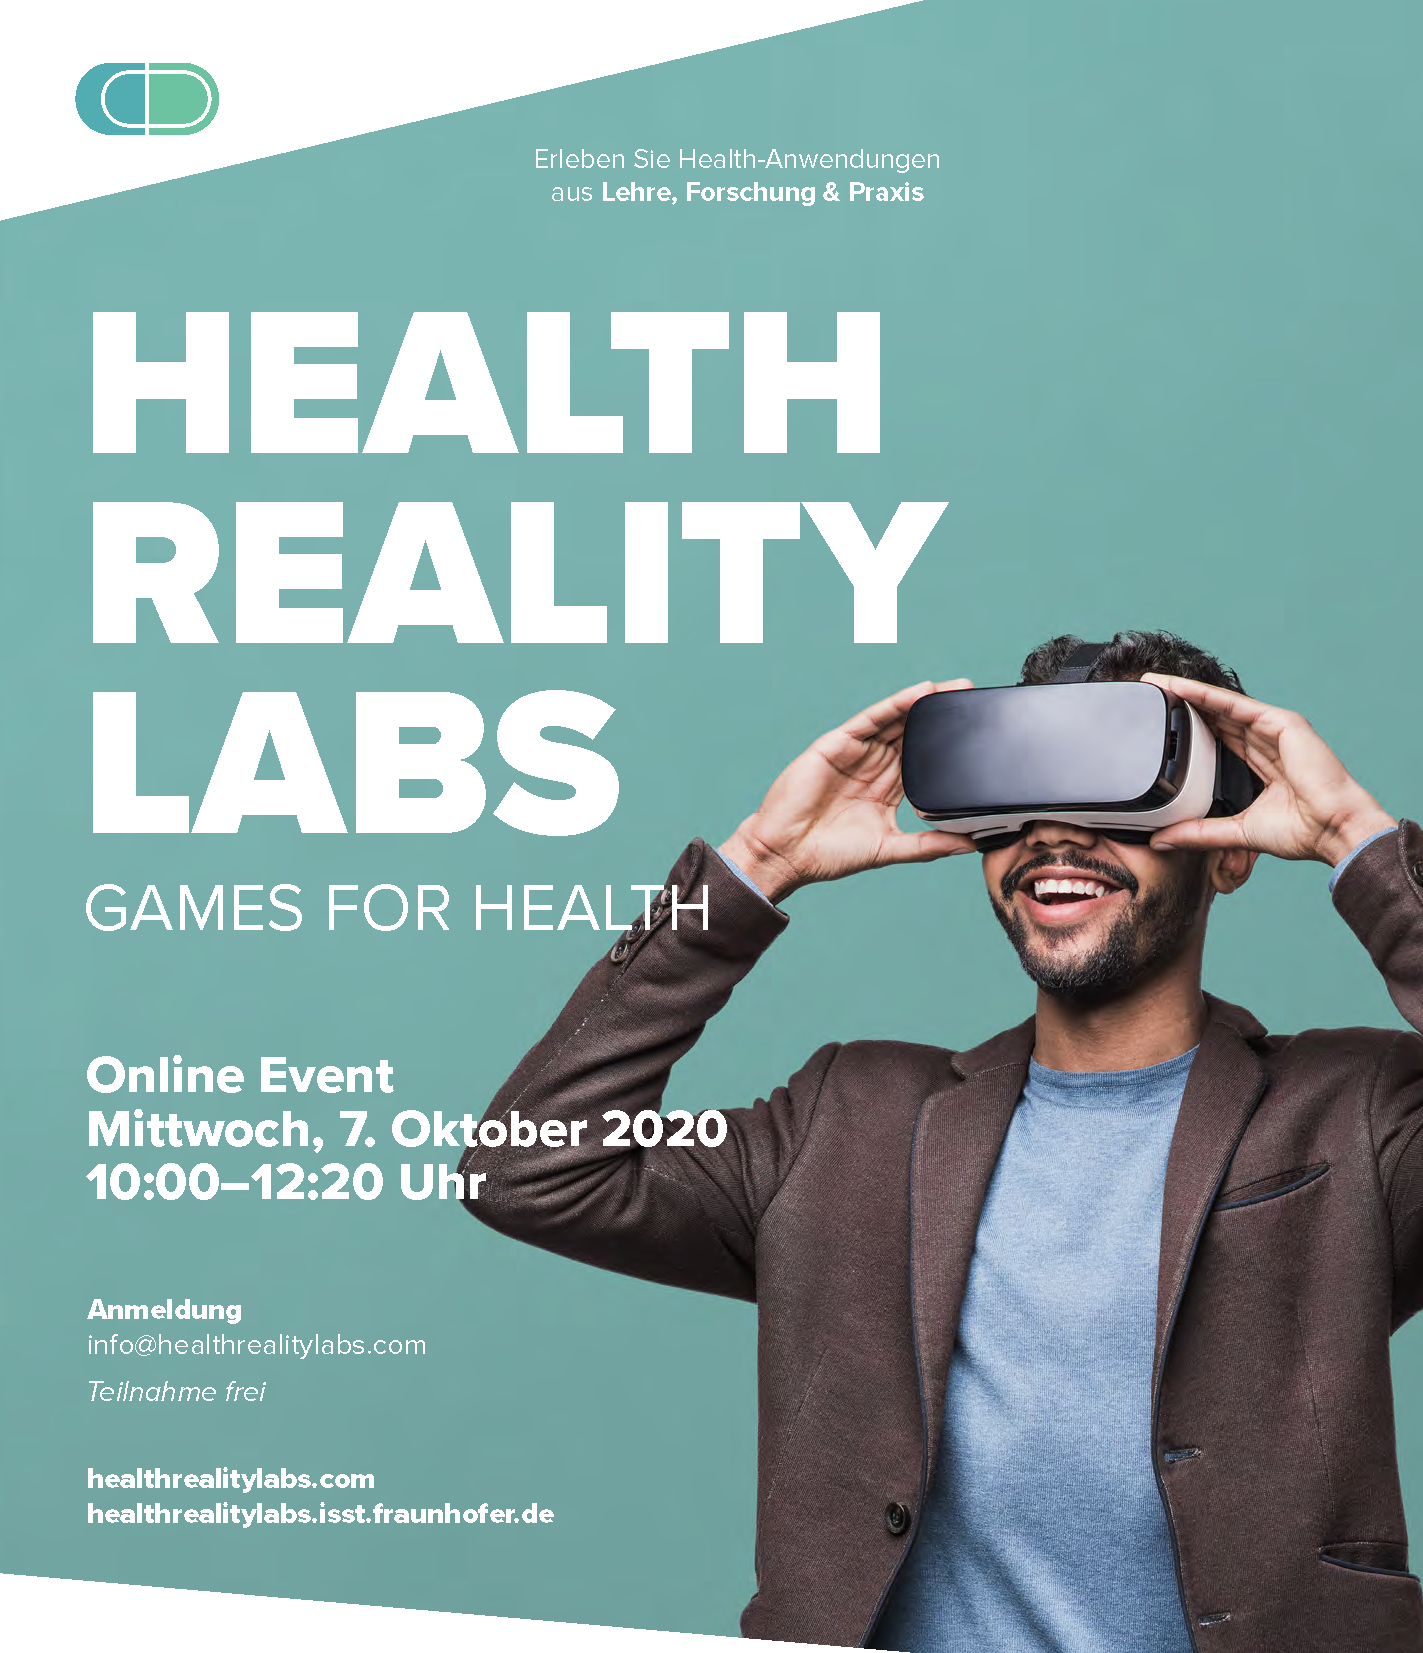 2. Online Event Health Reality Labs: Games for Health